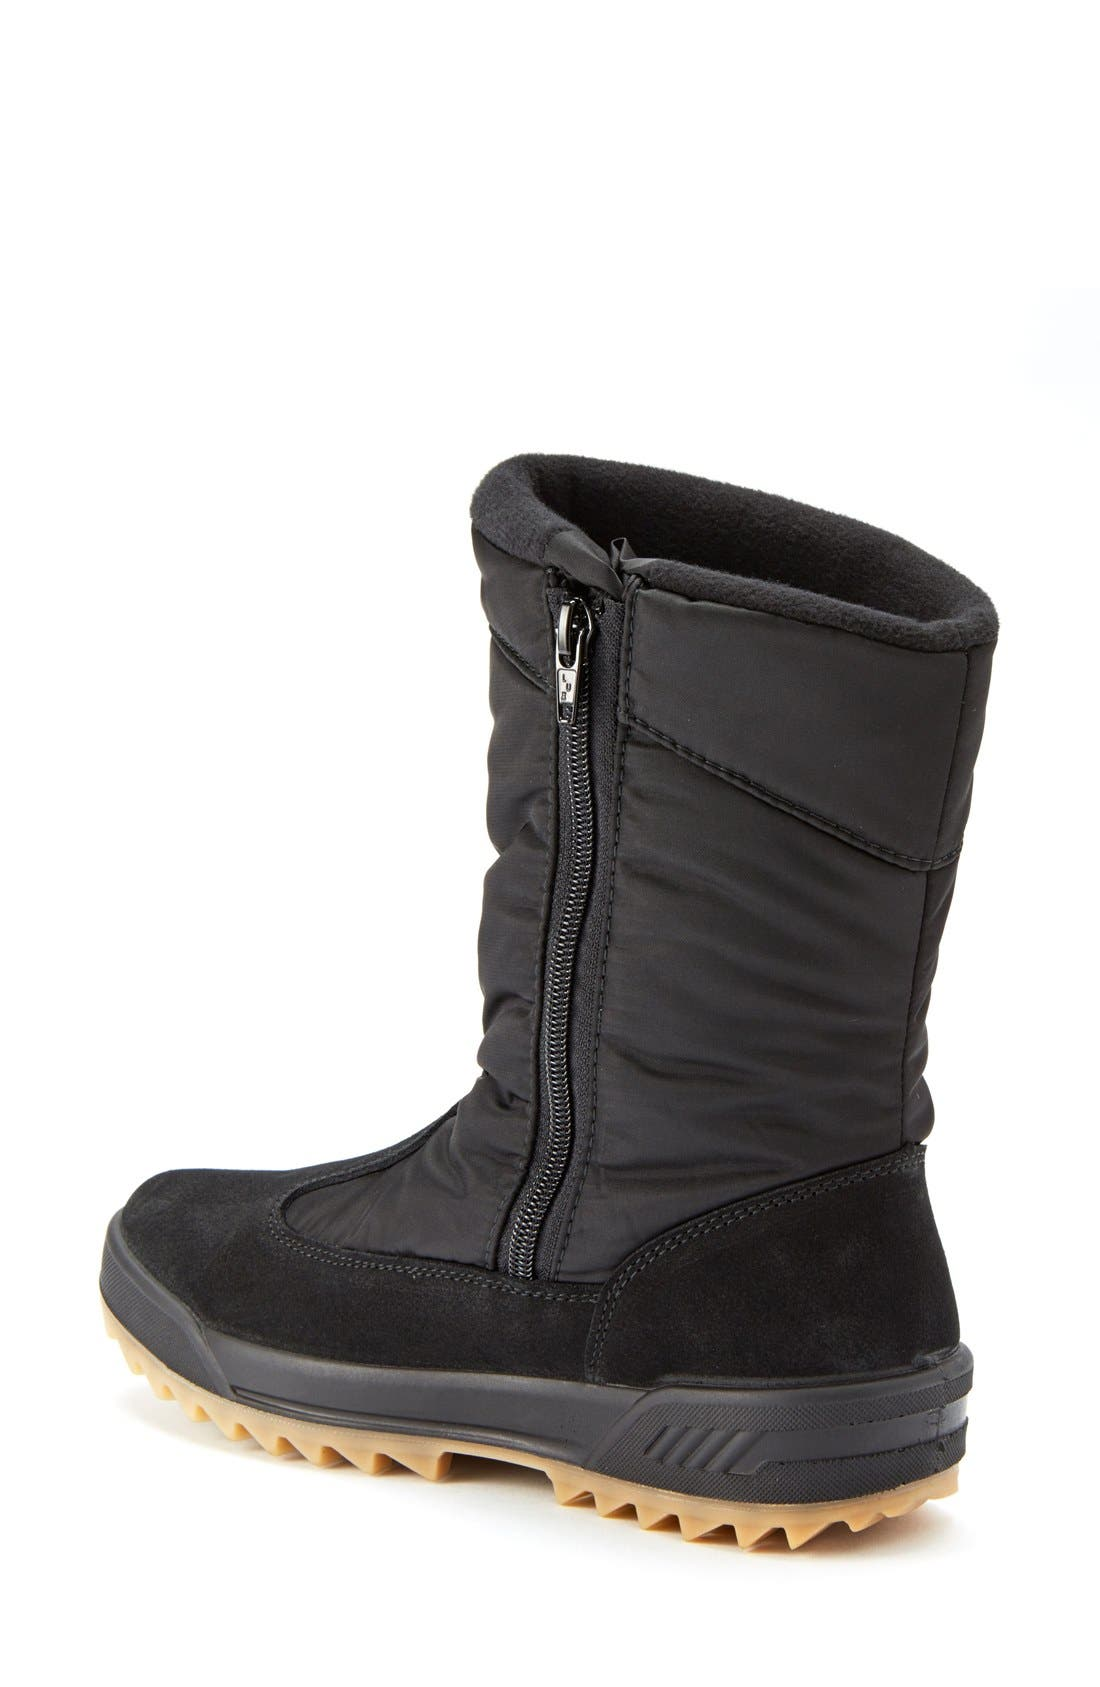 Iceland Waterproof Snow Boot,                             Alternate thumbnail 3, color,                             Black Multi Fabric